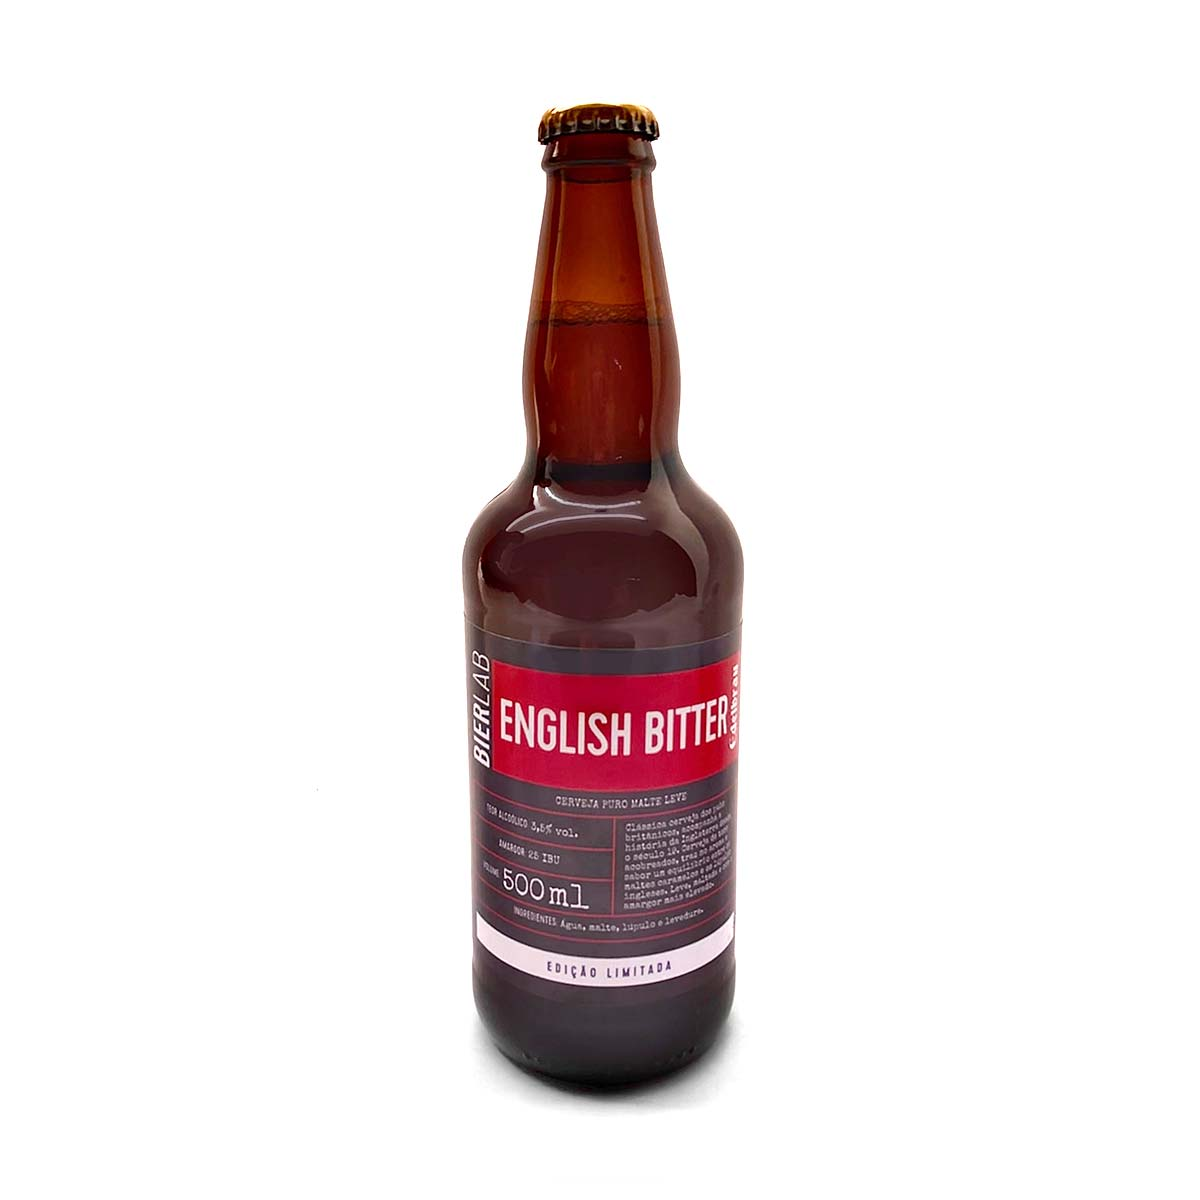 Edelbrau English Bitter 500ml